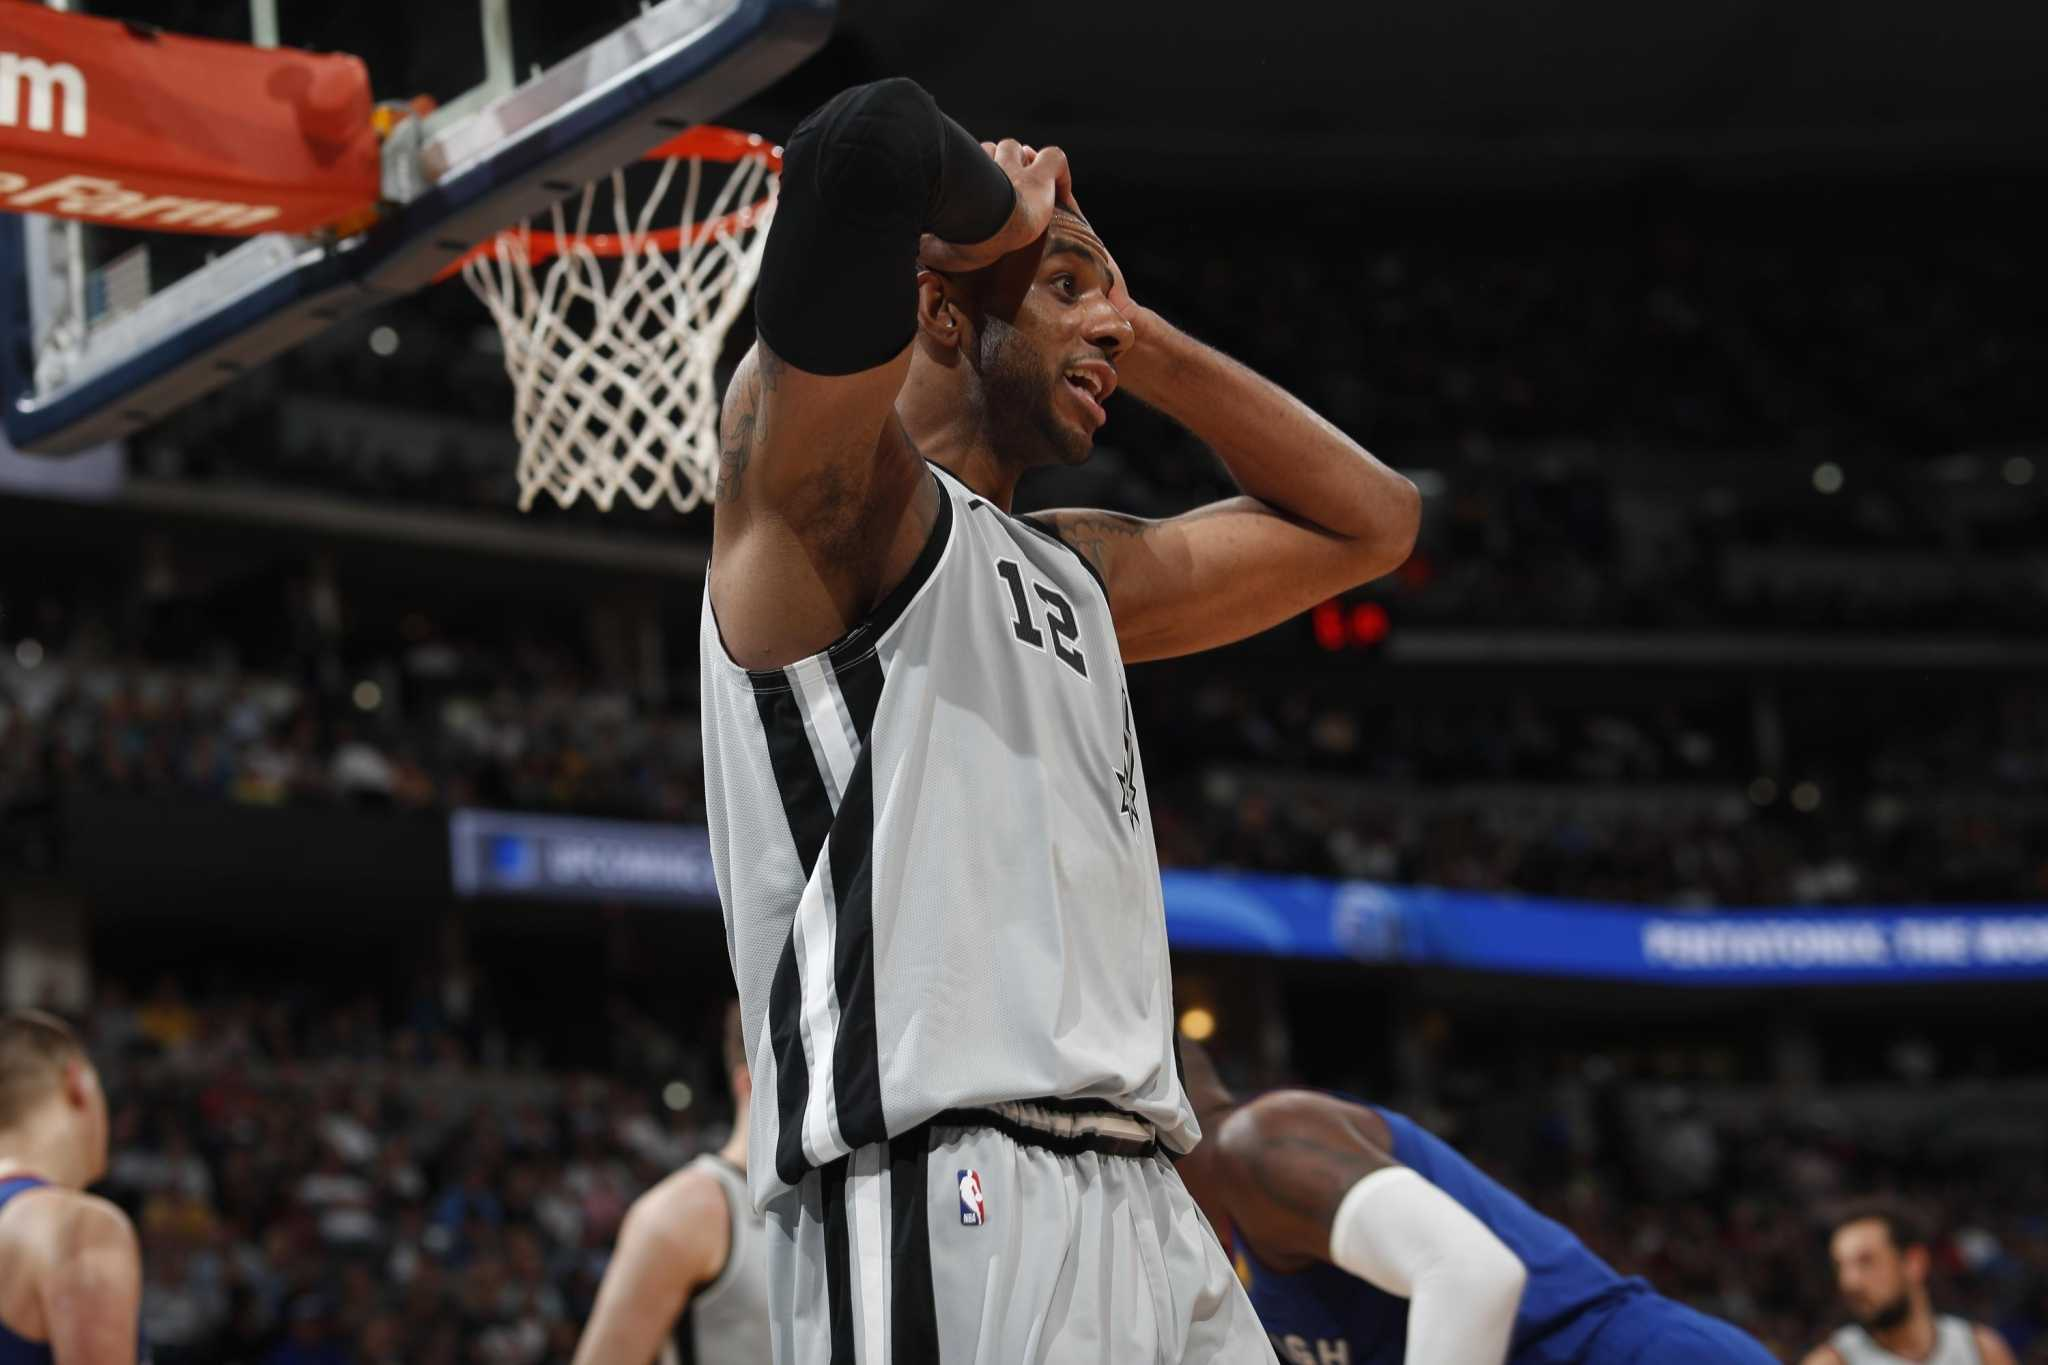 Spurs on do-or-die Game 6: Make it a dogfight